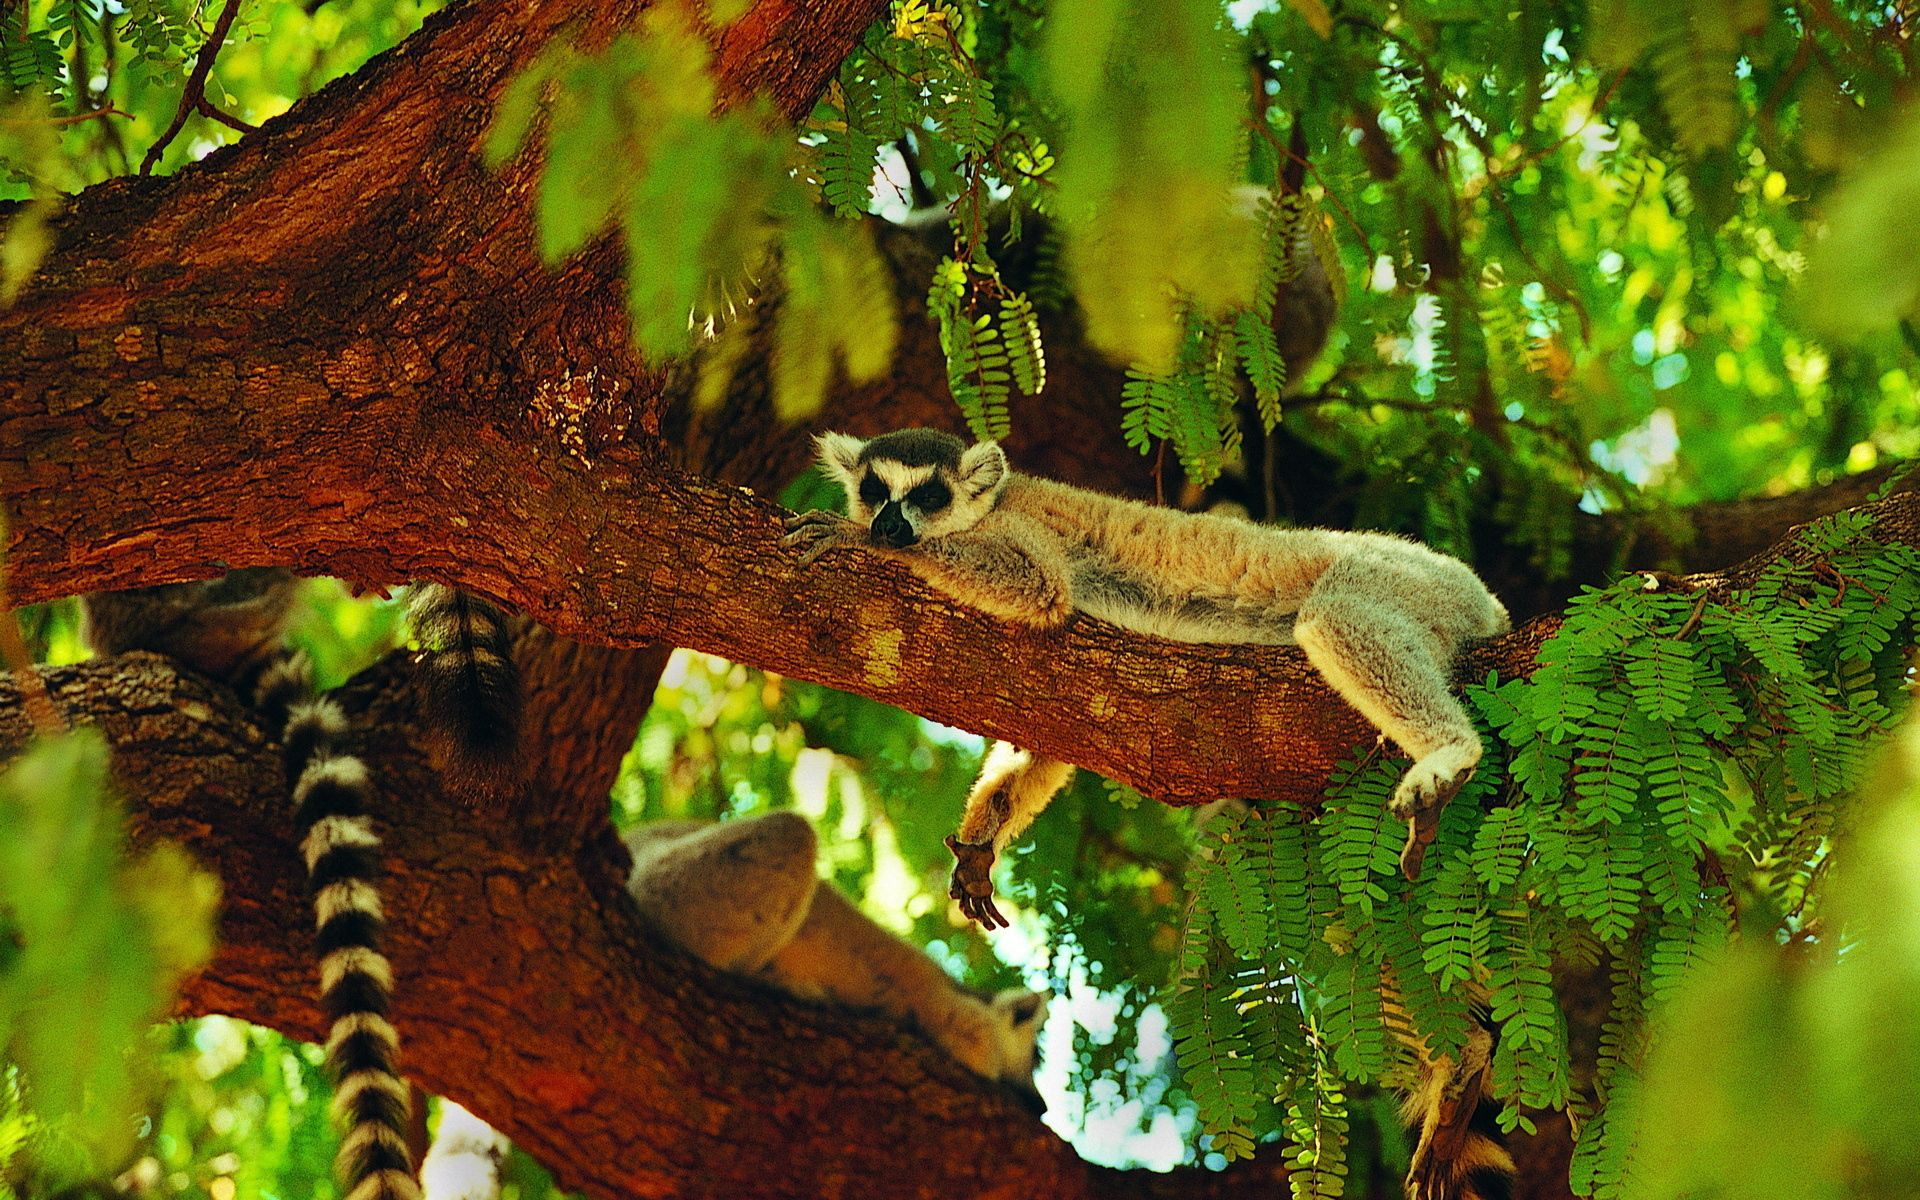 130837 download wallpaper Animals, Lemur, Asleep, Sleeps, Wood, Tree screensavers and pictures for free